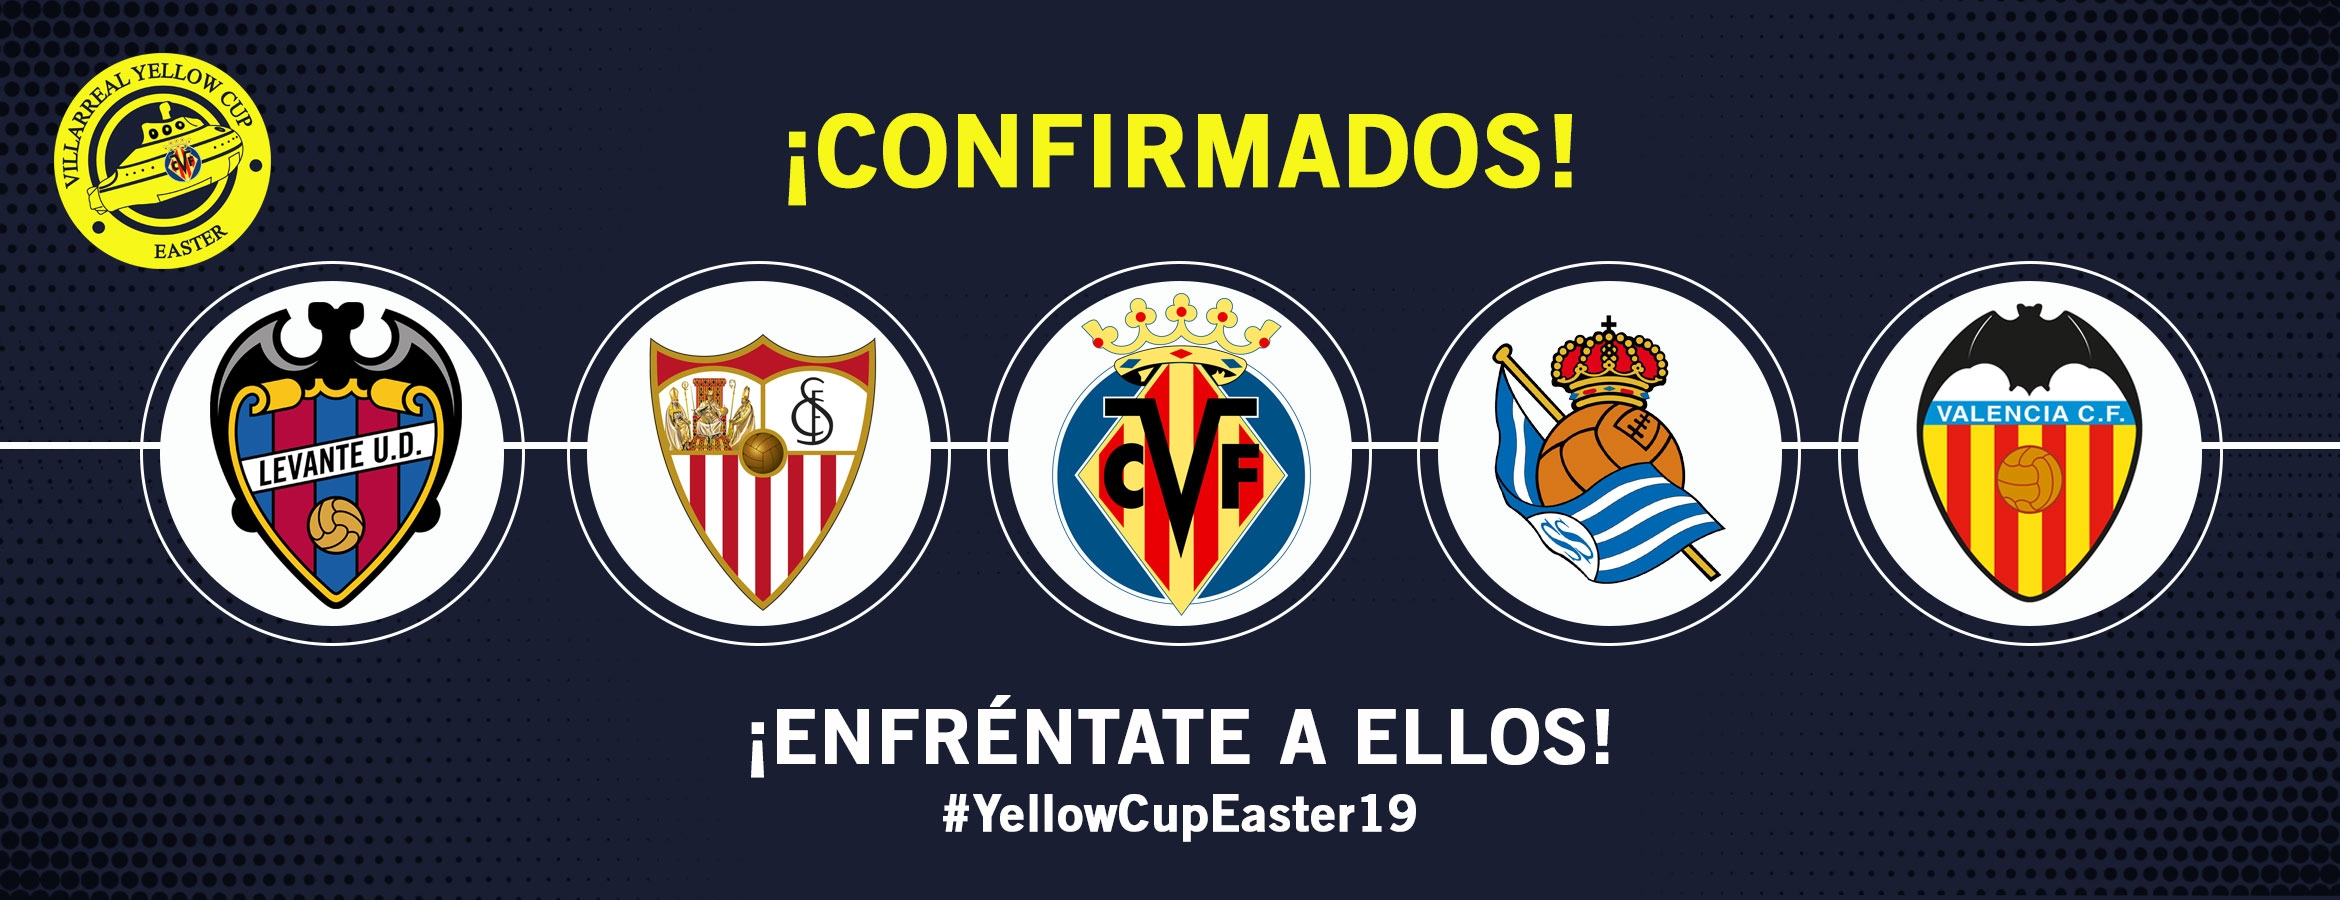 CARTEL DE NIVEL EN LA YELLOW CUP EASTER